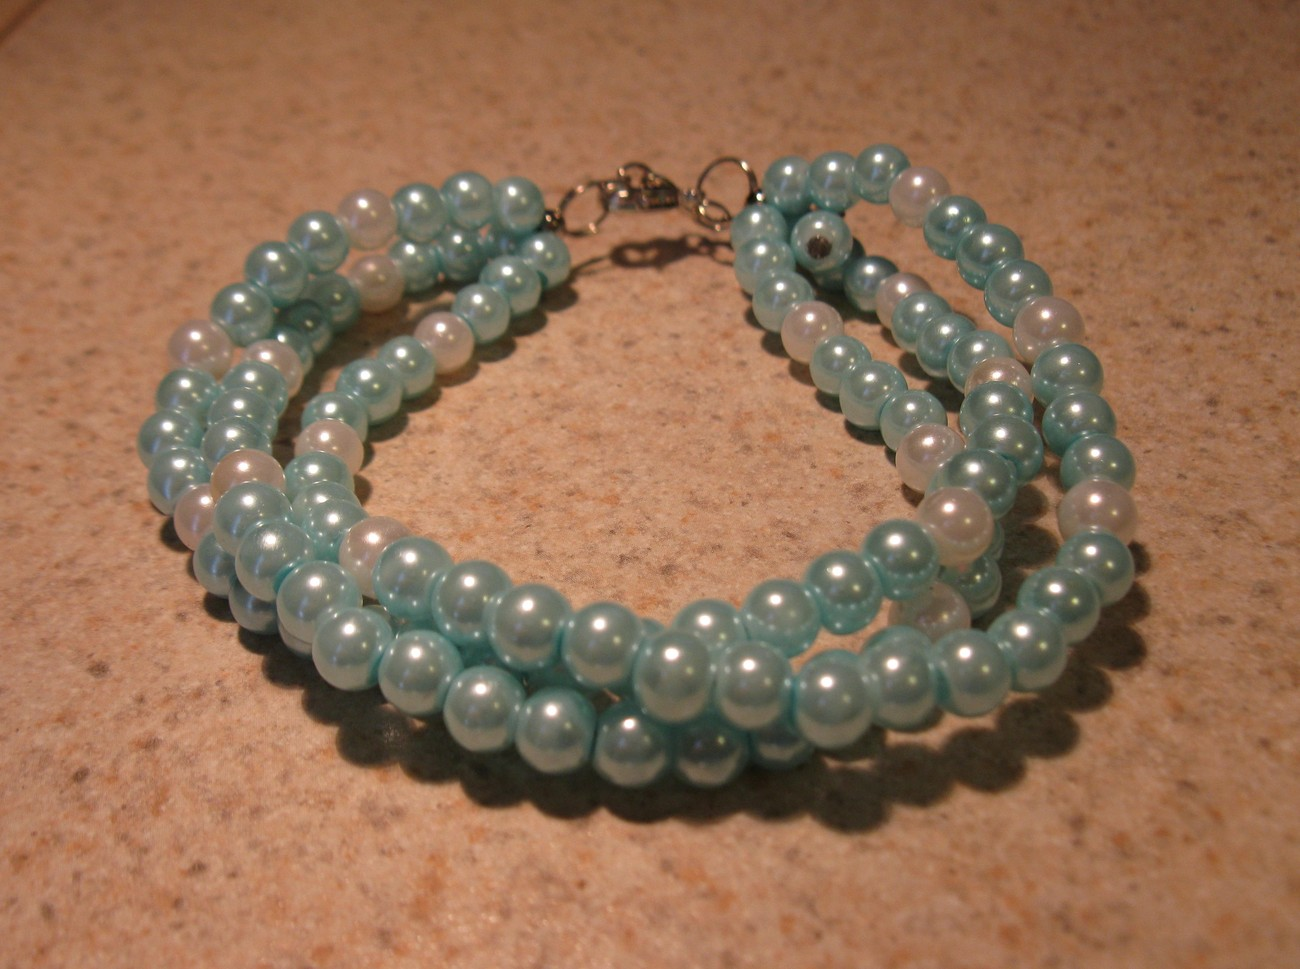 BRACELET BANGLE 3 STRANDS OF LIGHT BLUE & WHITE PEARL #443